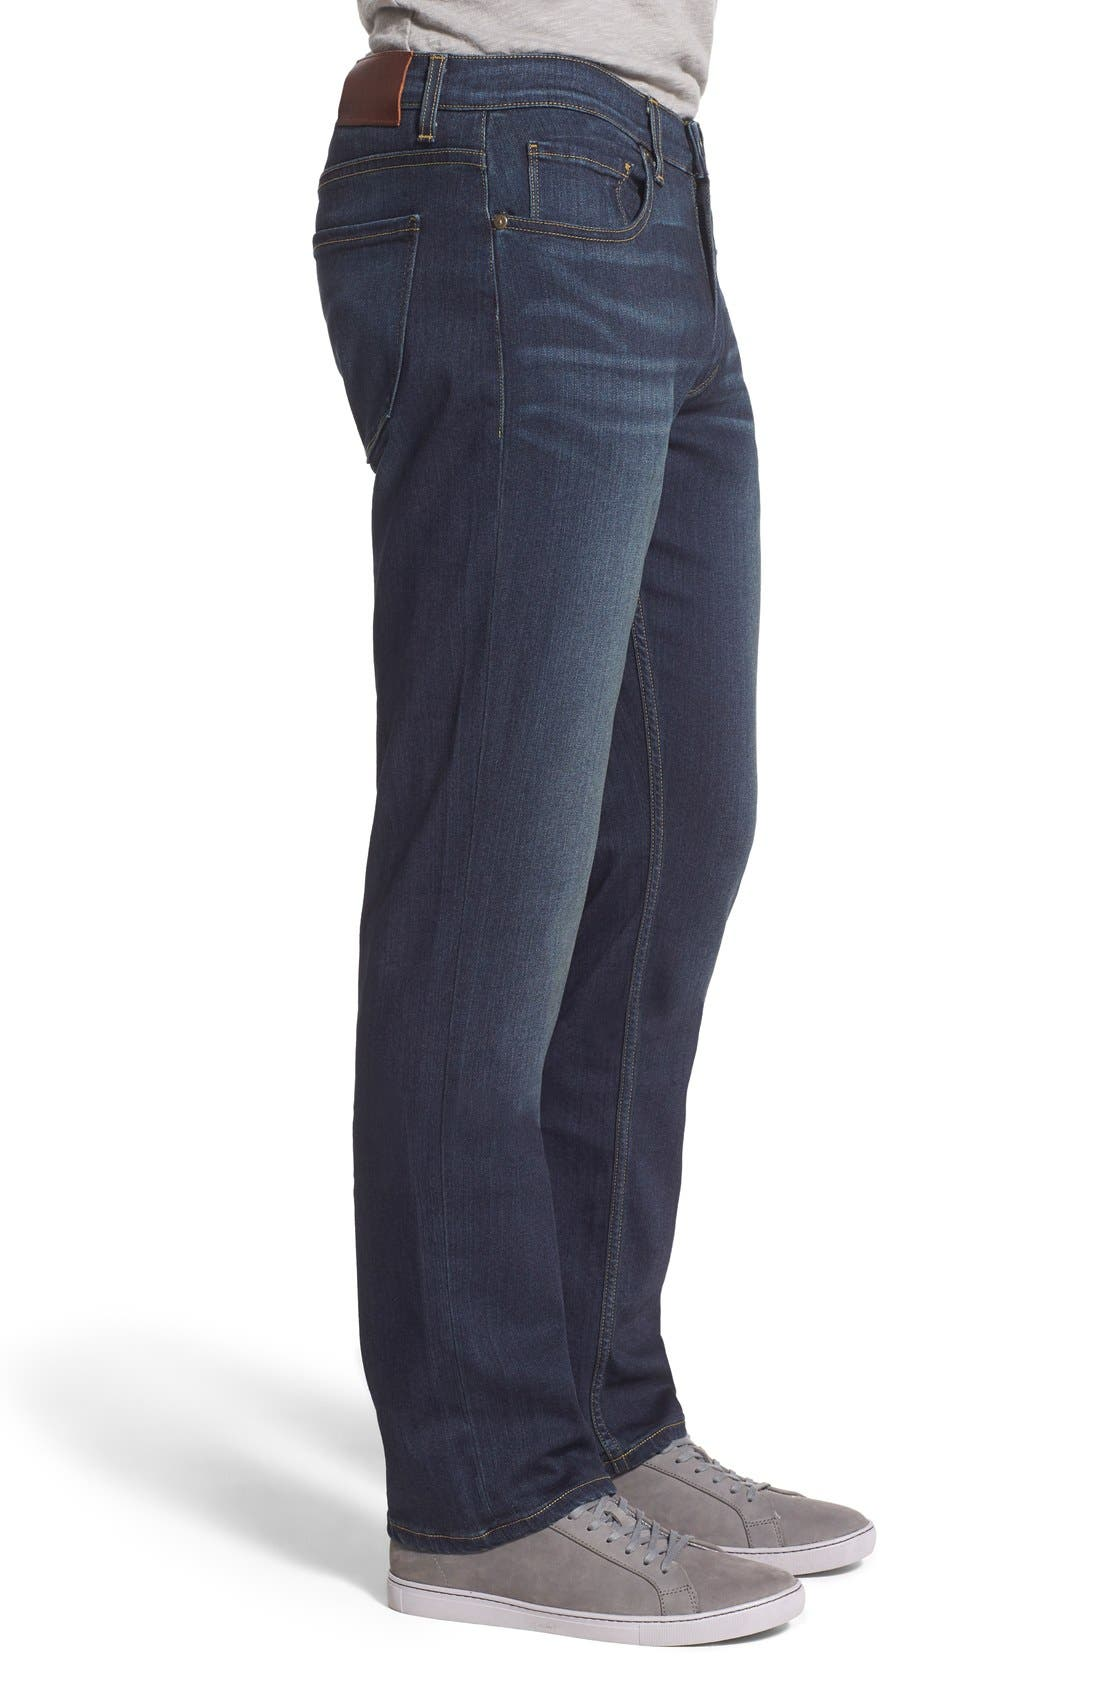 'Normandie' Straight Leg Jeans,                             Alternate thumbnail 3, color,                             Rigby